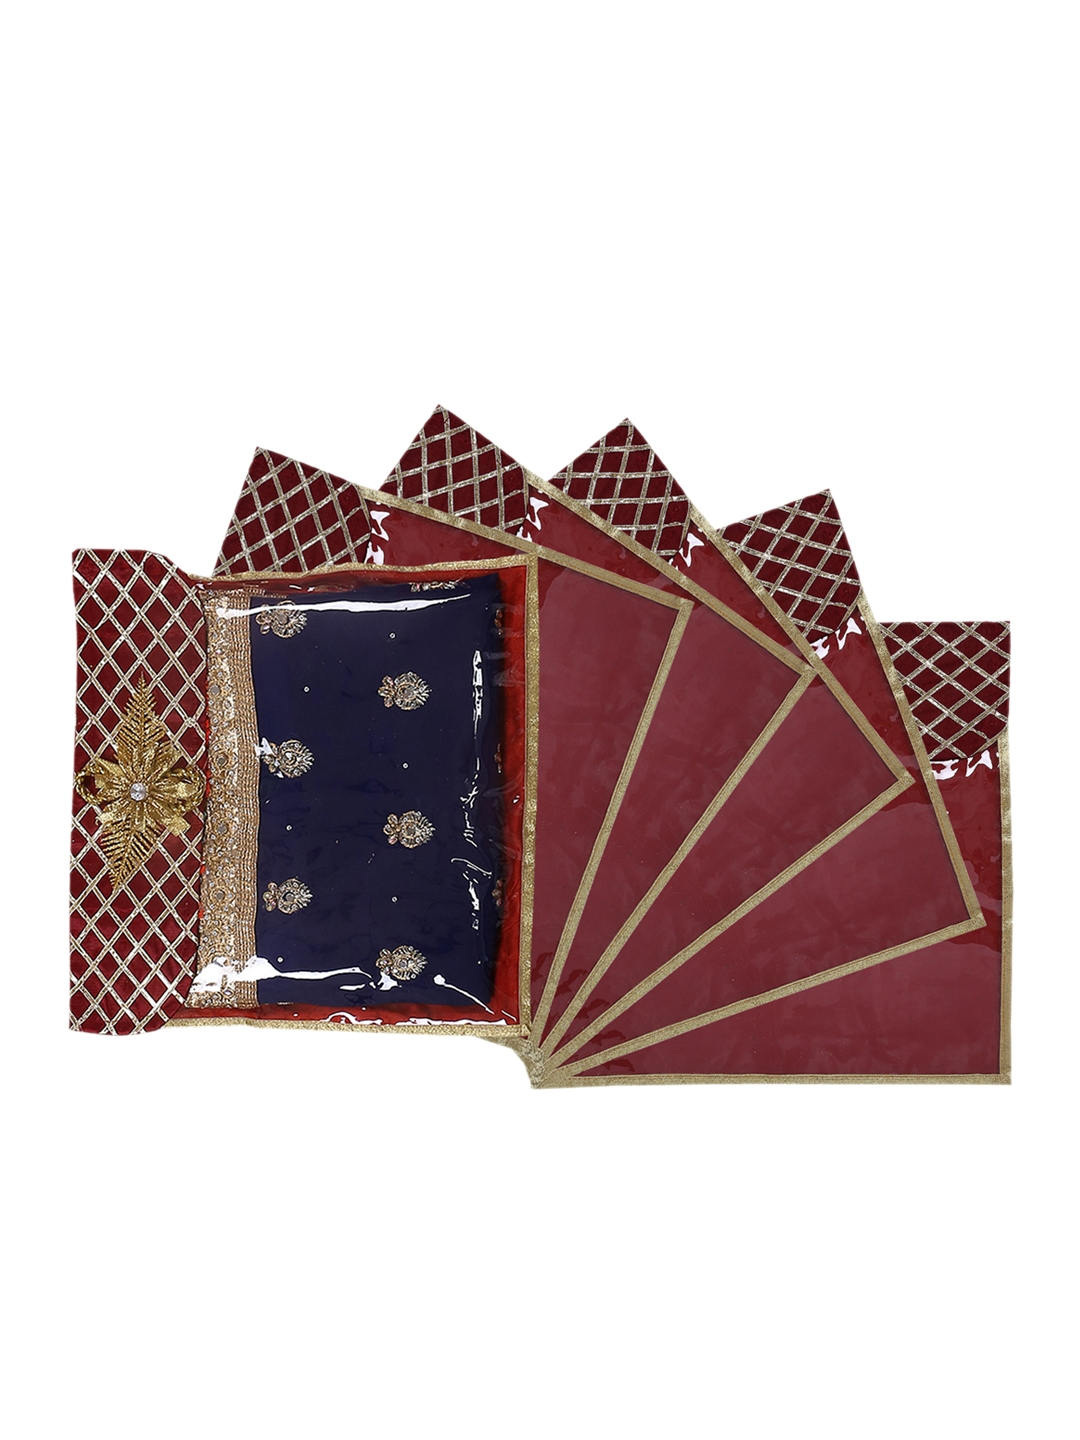 Kuber Industries Set Of 6 Maroon Solid Single Packing Saree Cover Organizer